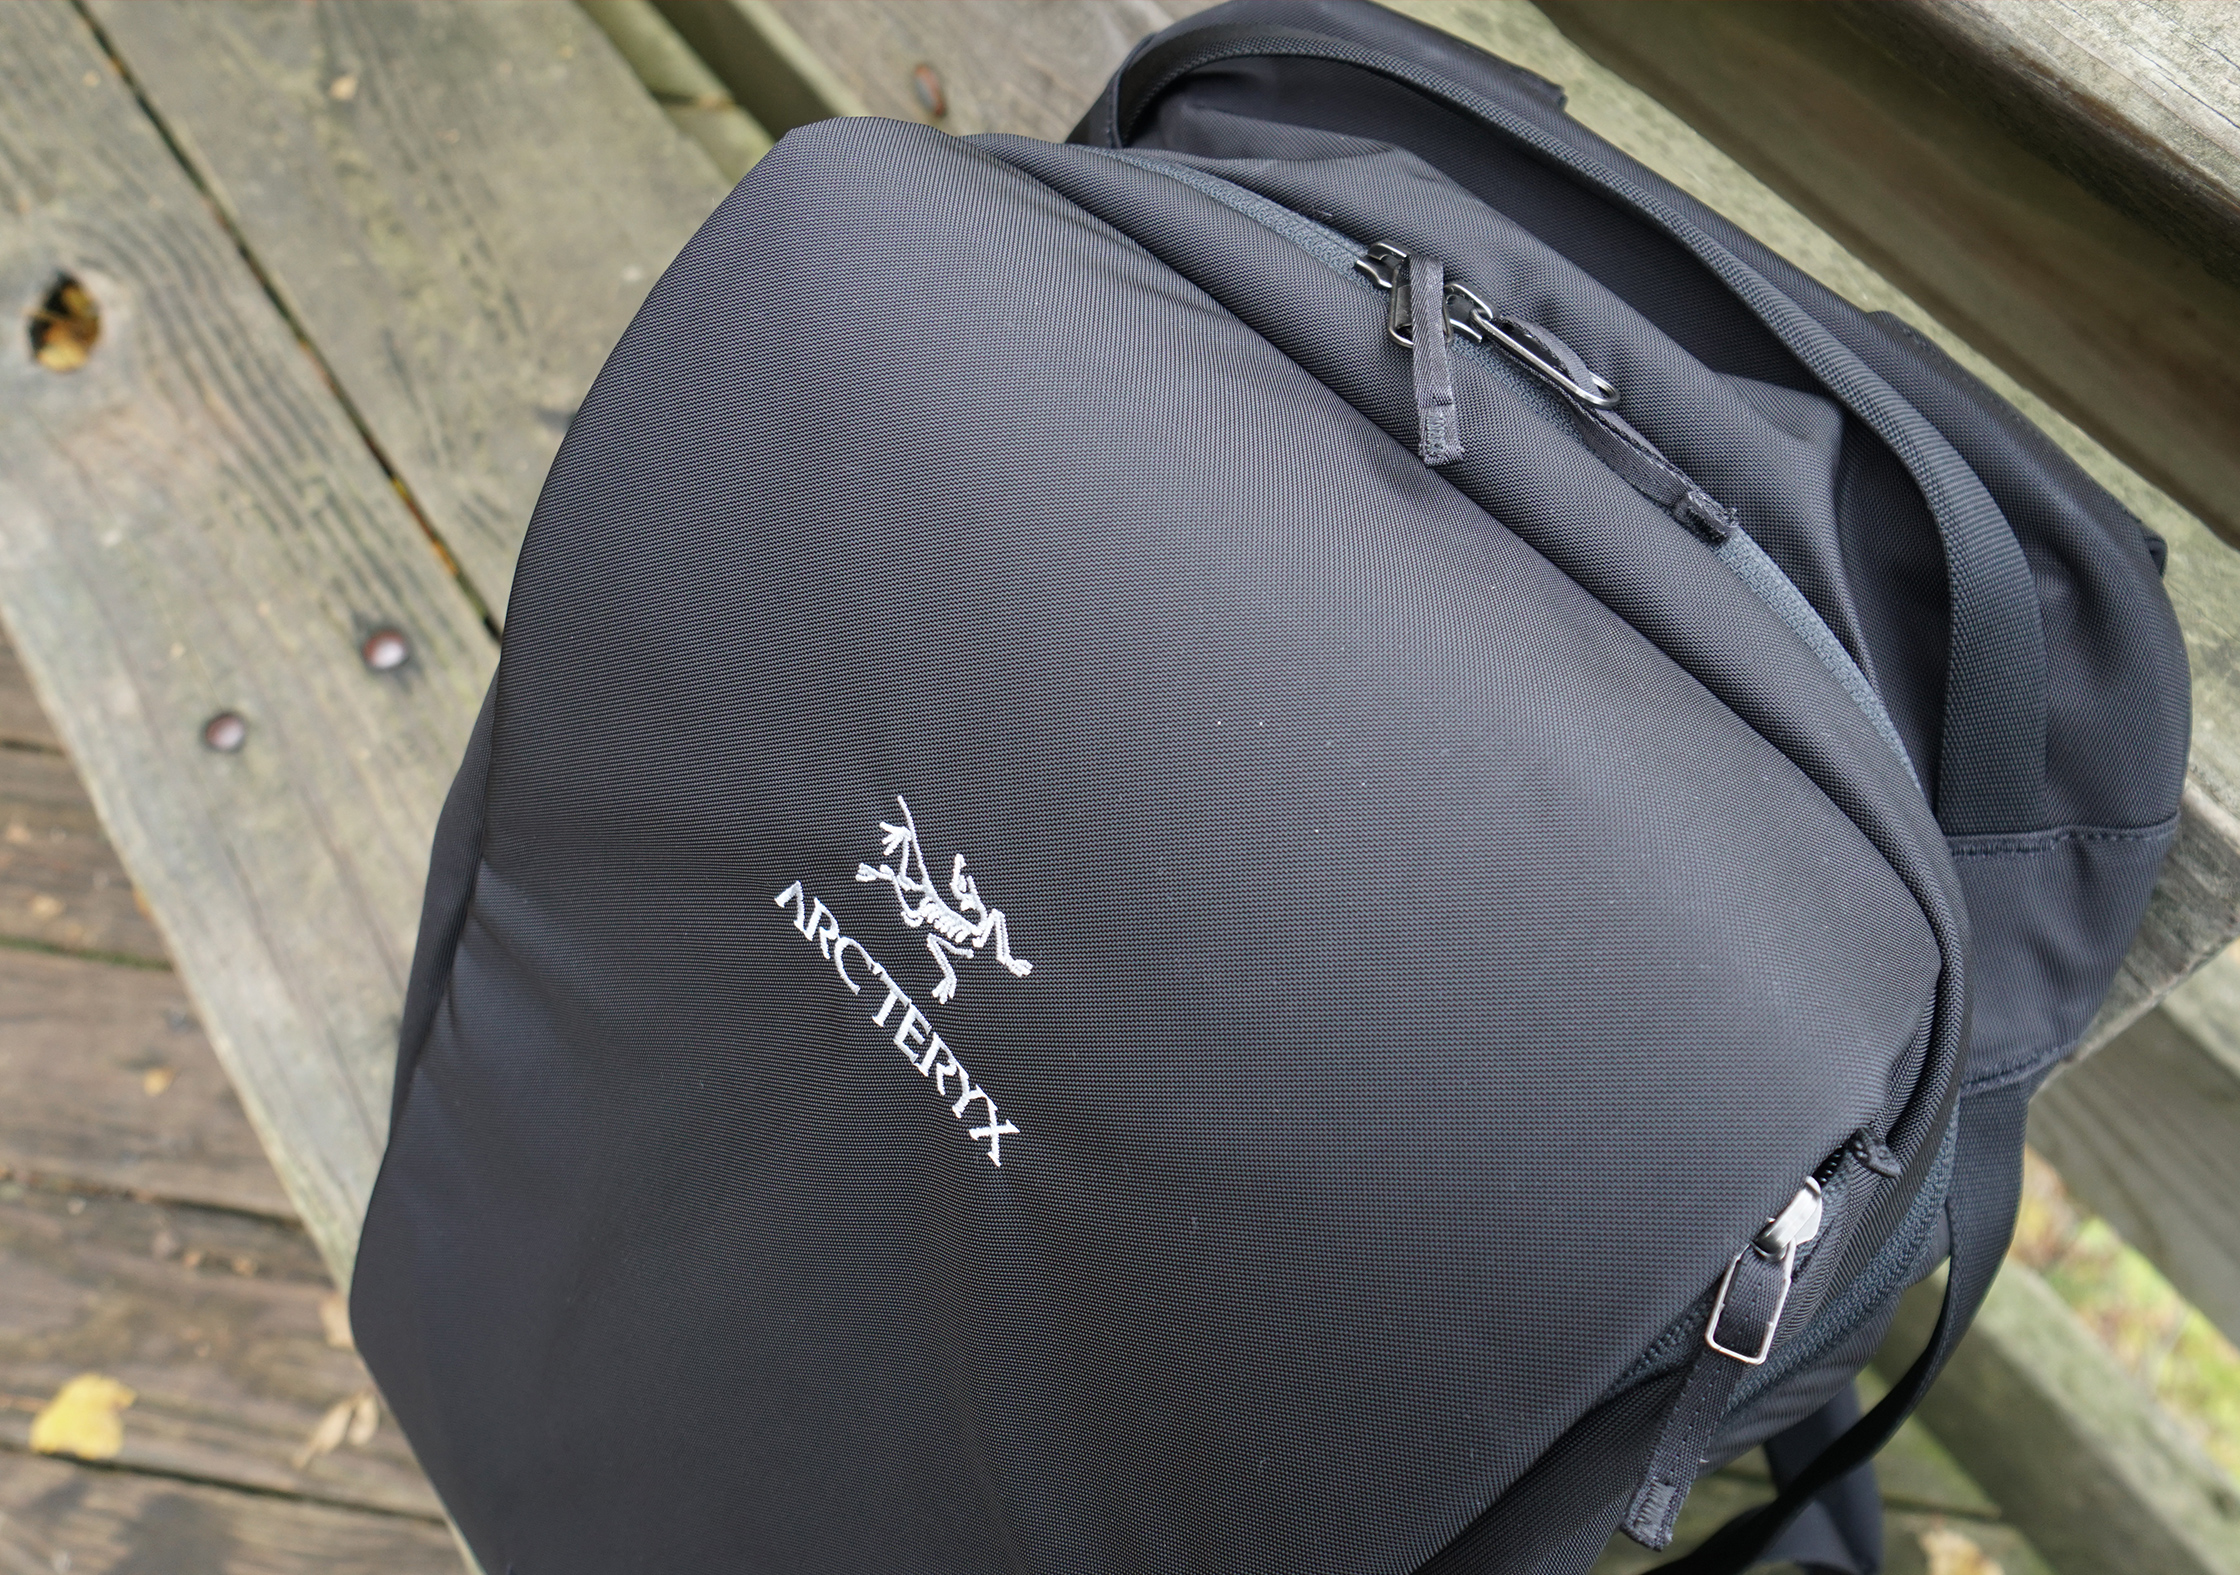 Arc'teryx Blade 28 Backpack In the Wild